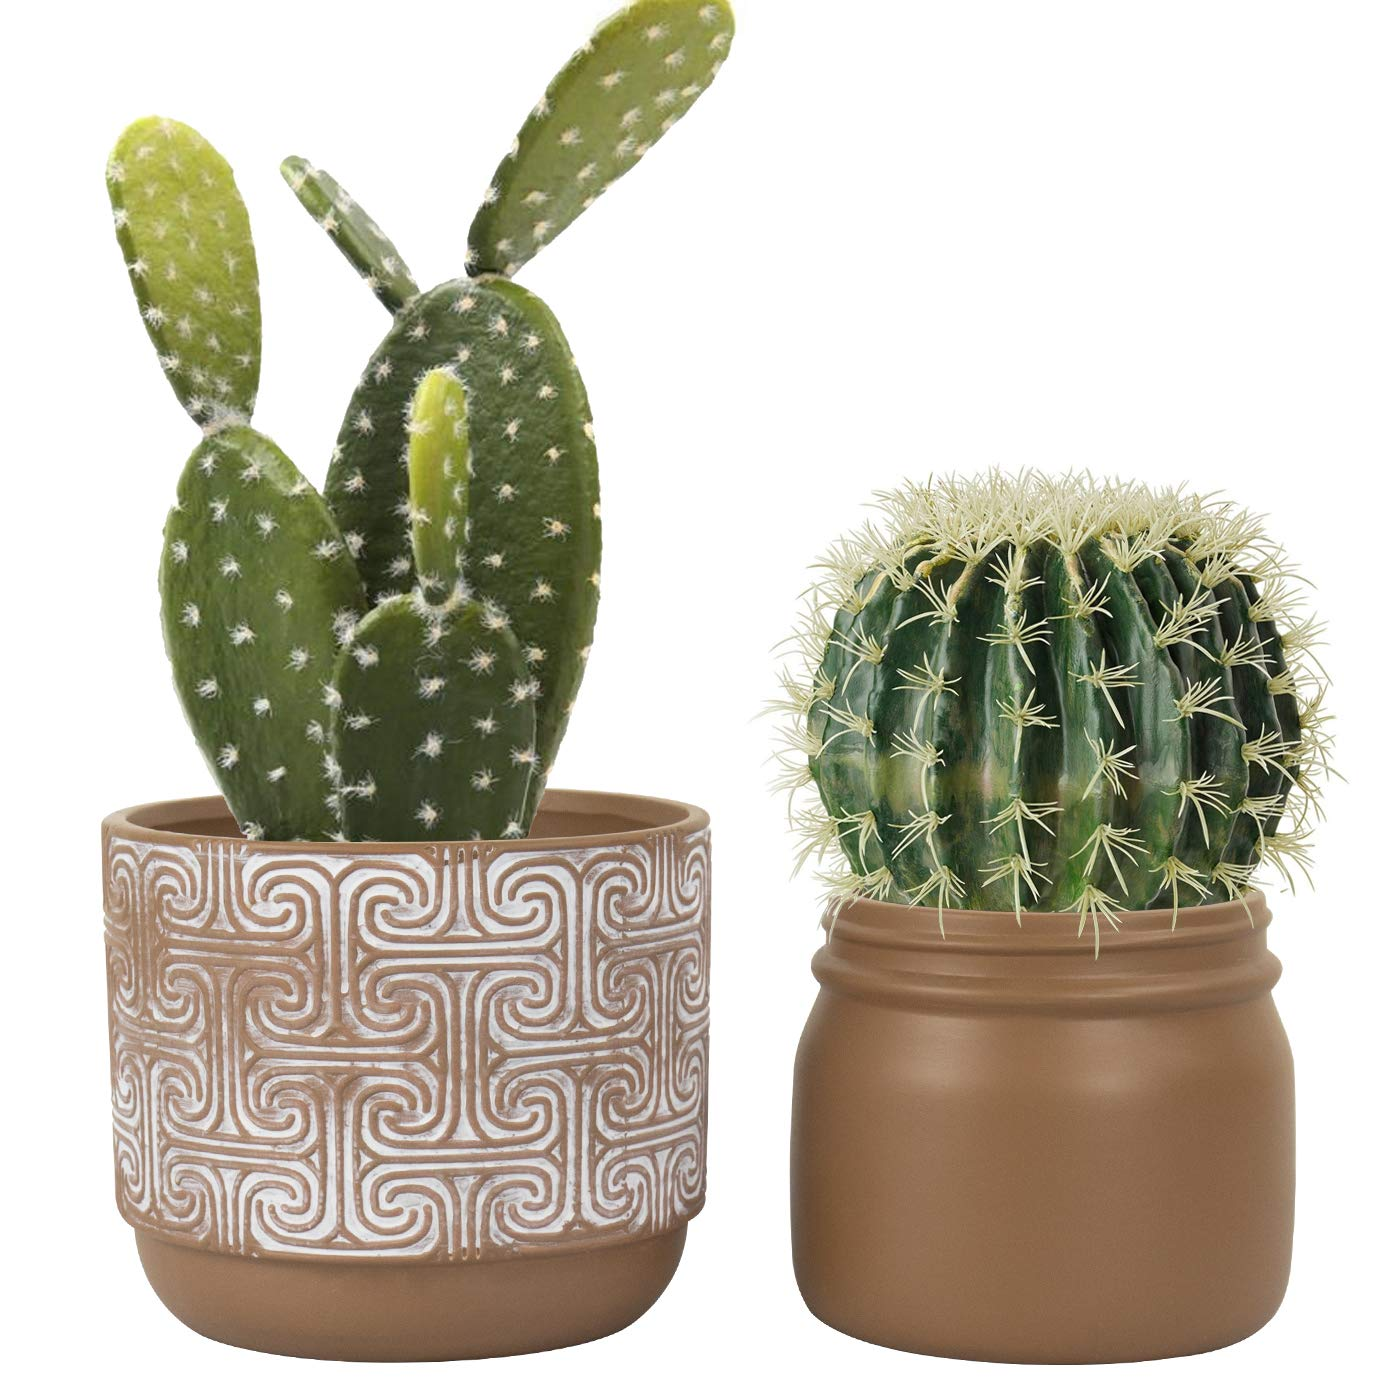 Terracotta Pots Clay Planters - 6.3 Inch Pack 2 Modern Round Ceramic Pottery Succulent Cactus Flower Pots with Drainage Hole for Garden Indoor Outdoor, Rustic Home Decor